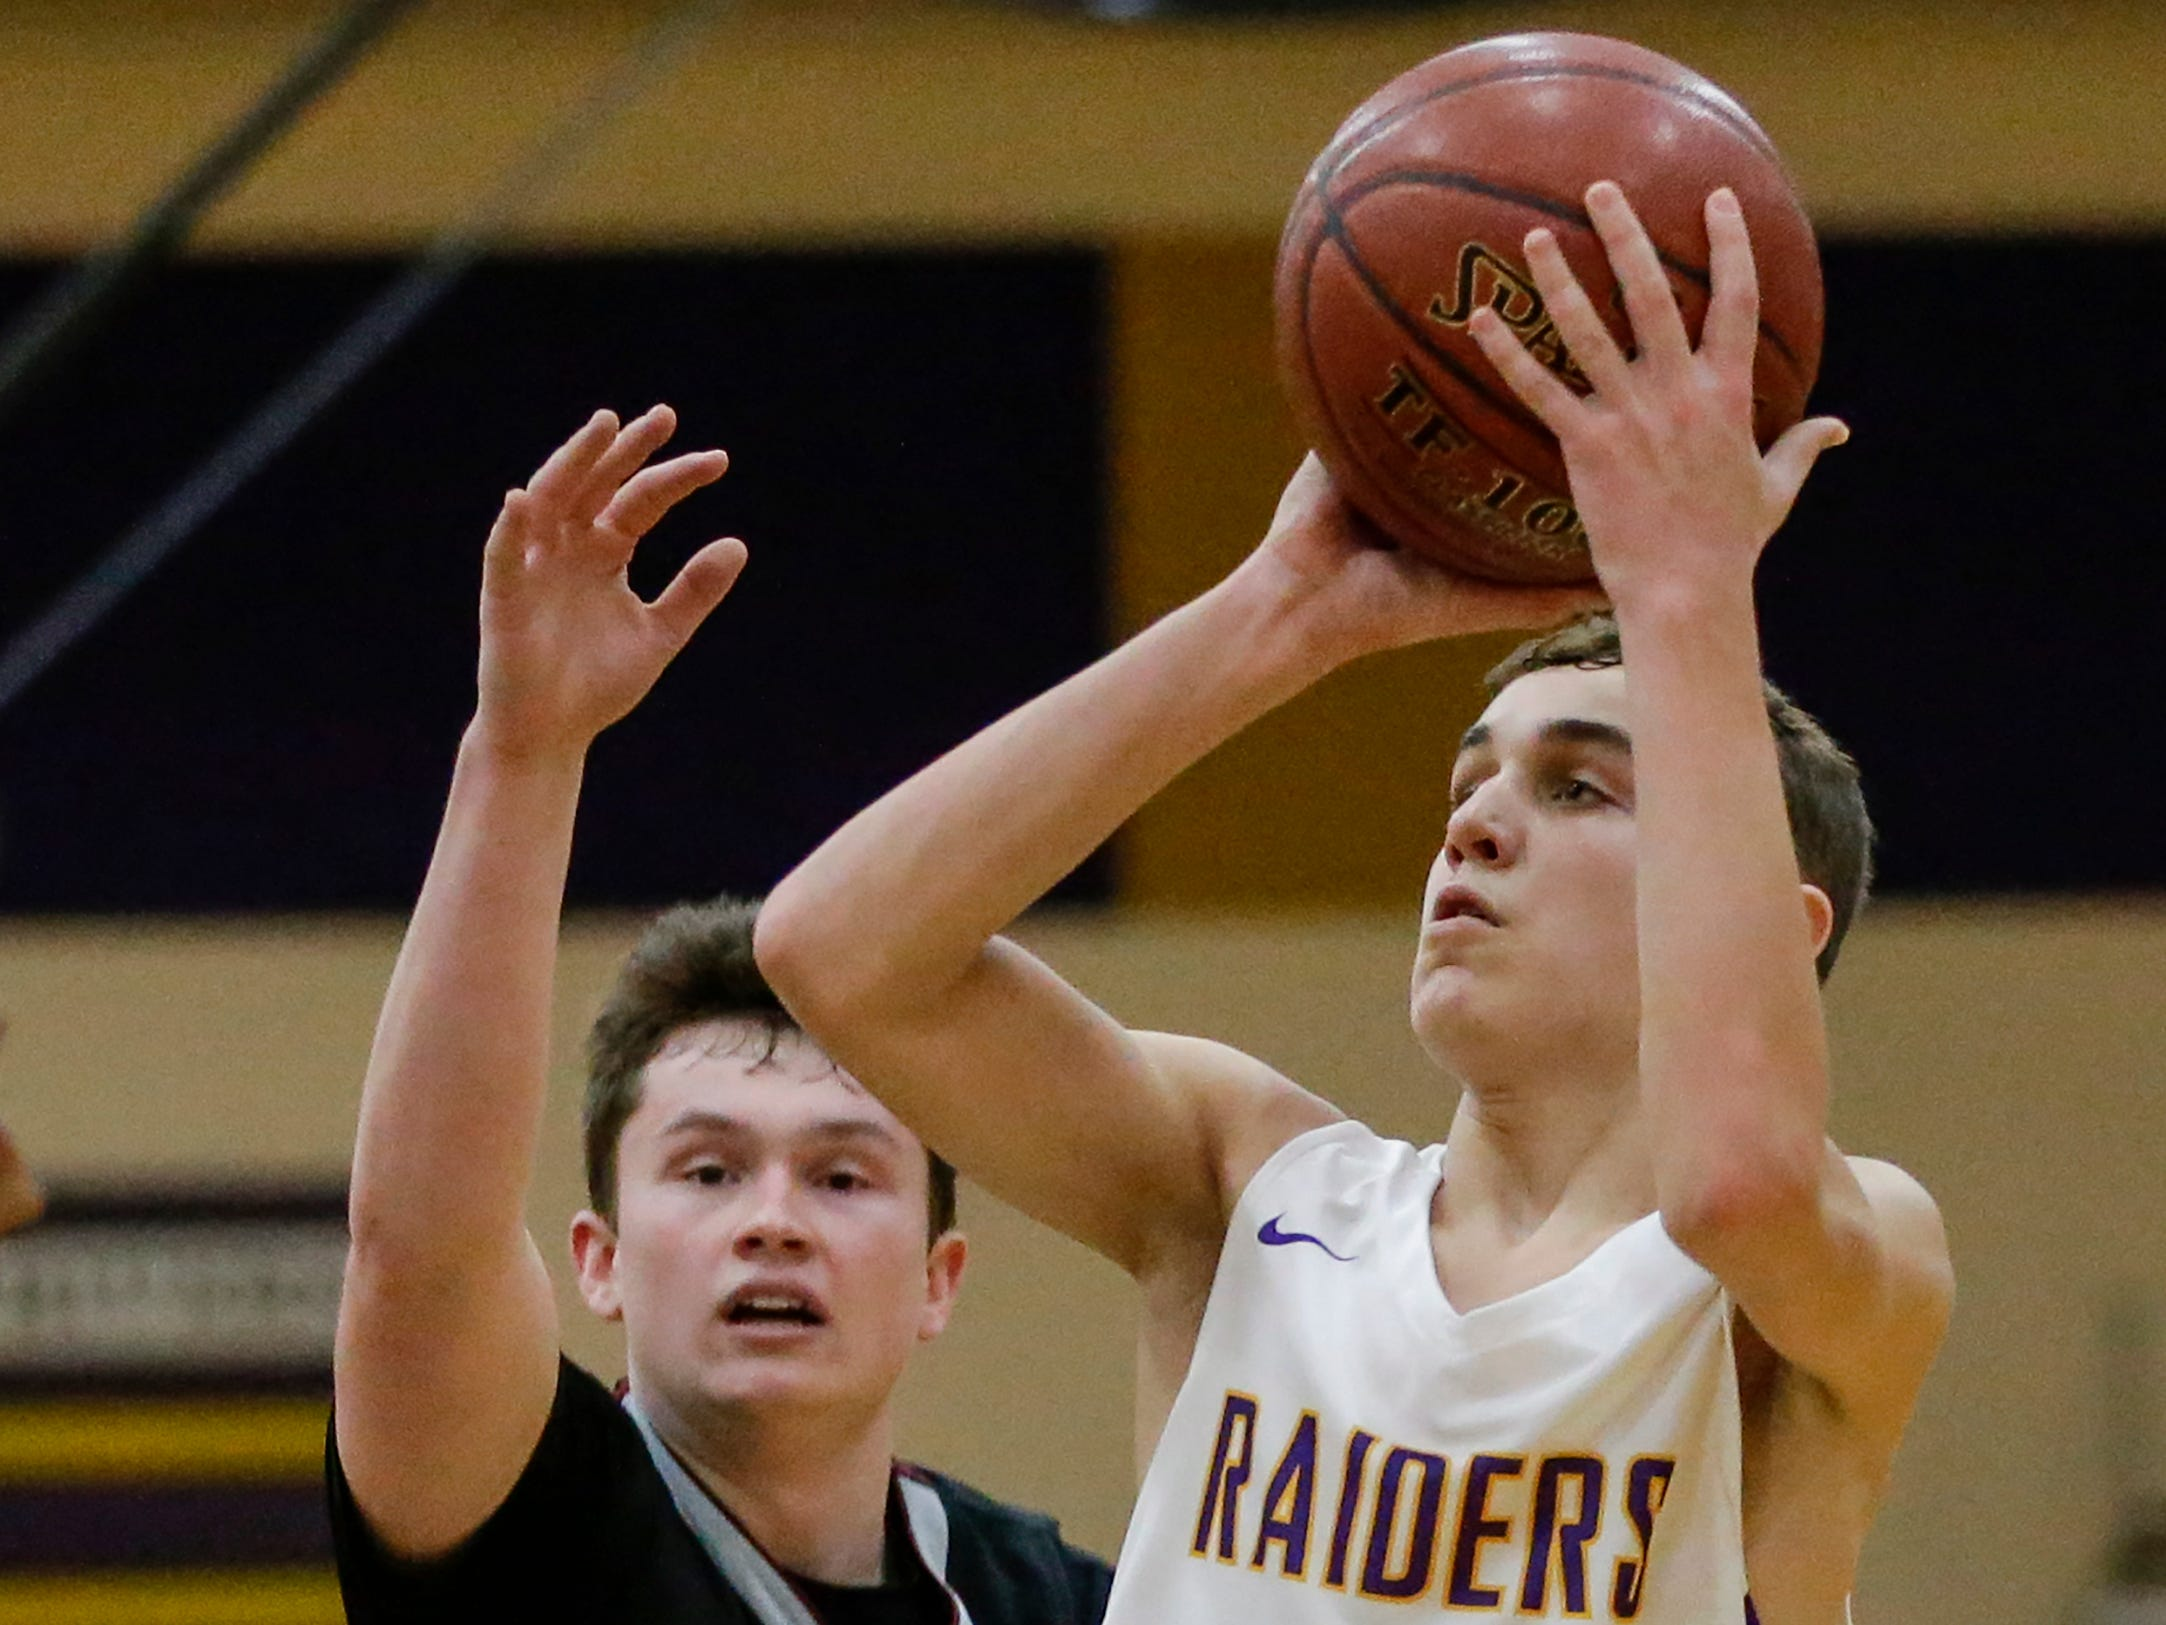 Two Rivers' Cameron Daffner shoots against Green Bay NEW Lutheran at Two Rivers High School Tuesday, January 8, 2019, in Two Rivers, Wis. Joshua Clark/USA TODAY NETWORK-Wisconsin